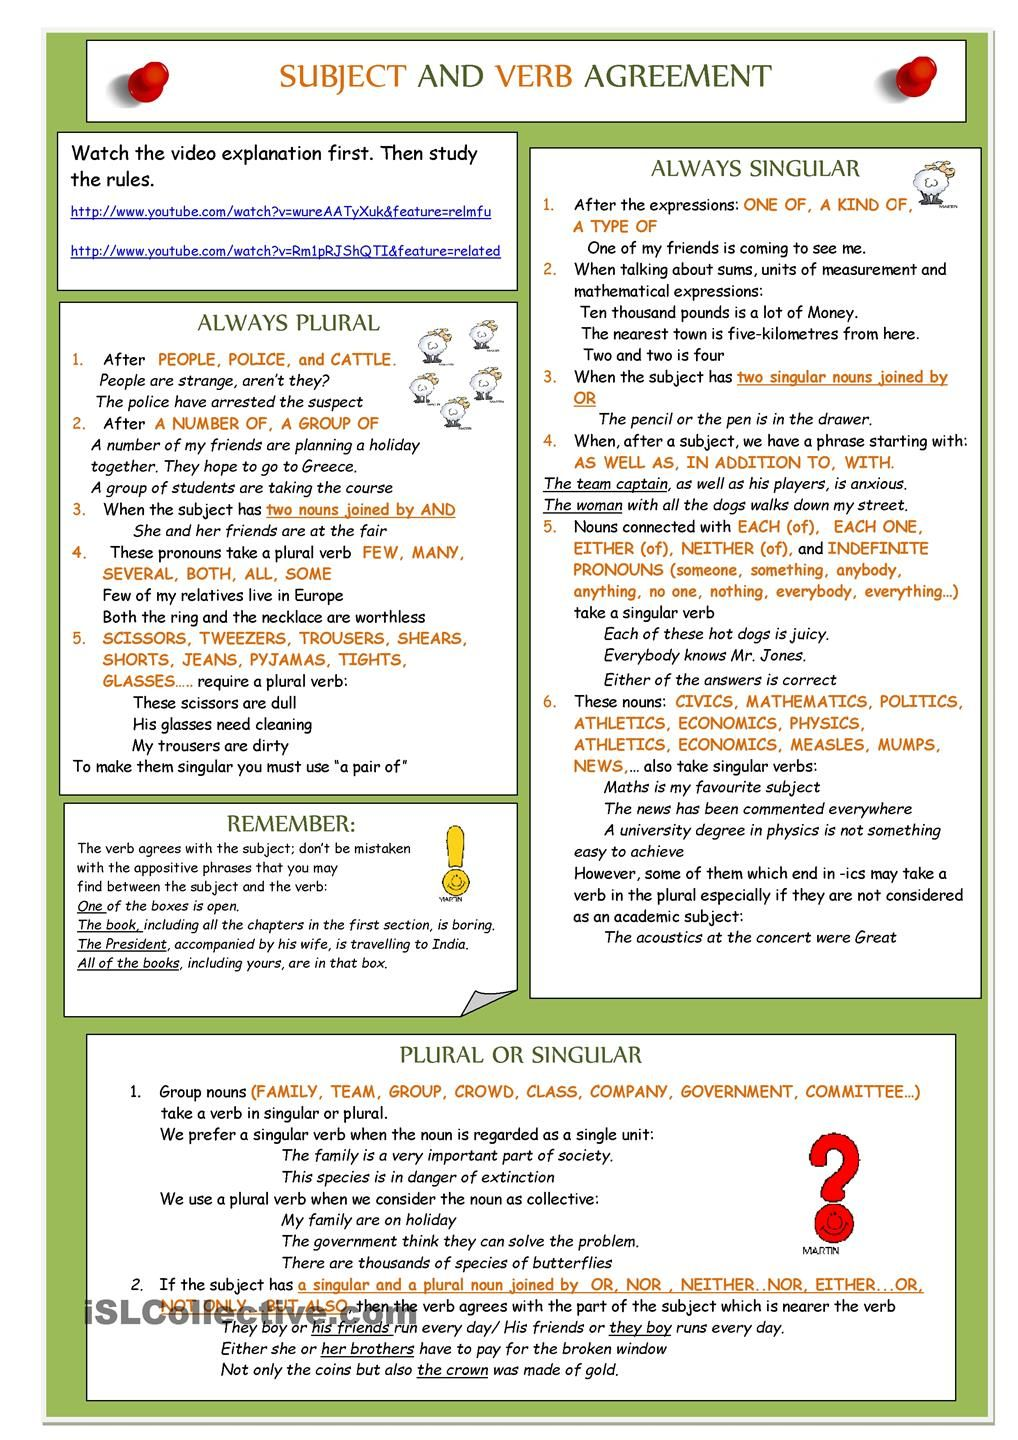 Subject And Verb Agreement With Images Subject And Verb